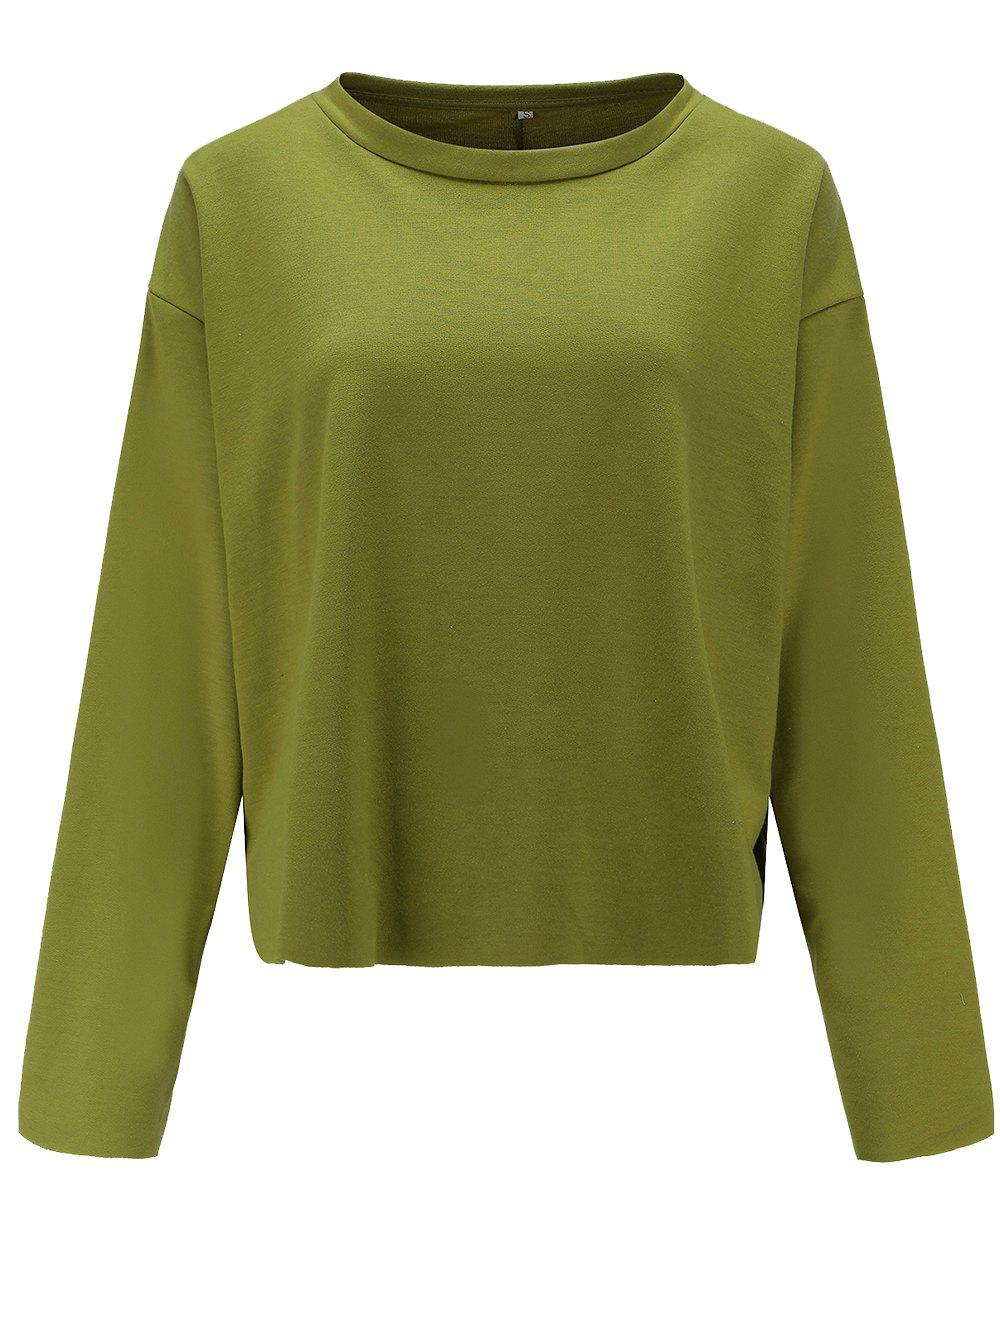 New Womens Casual Round Neck  Sweatshirt  Long Sleeve Pullover Tops